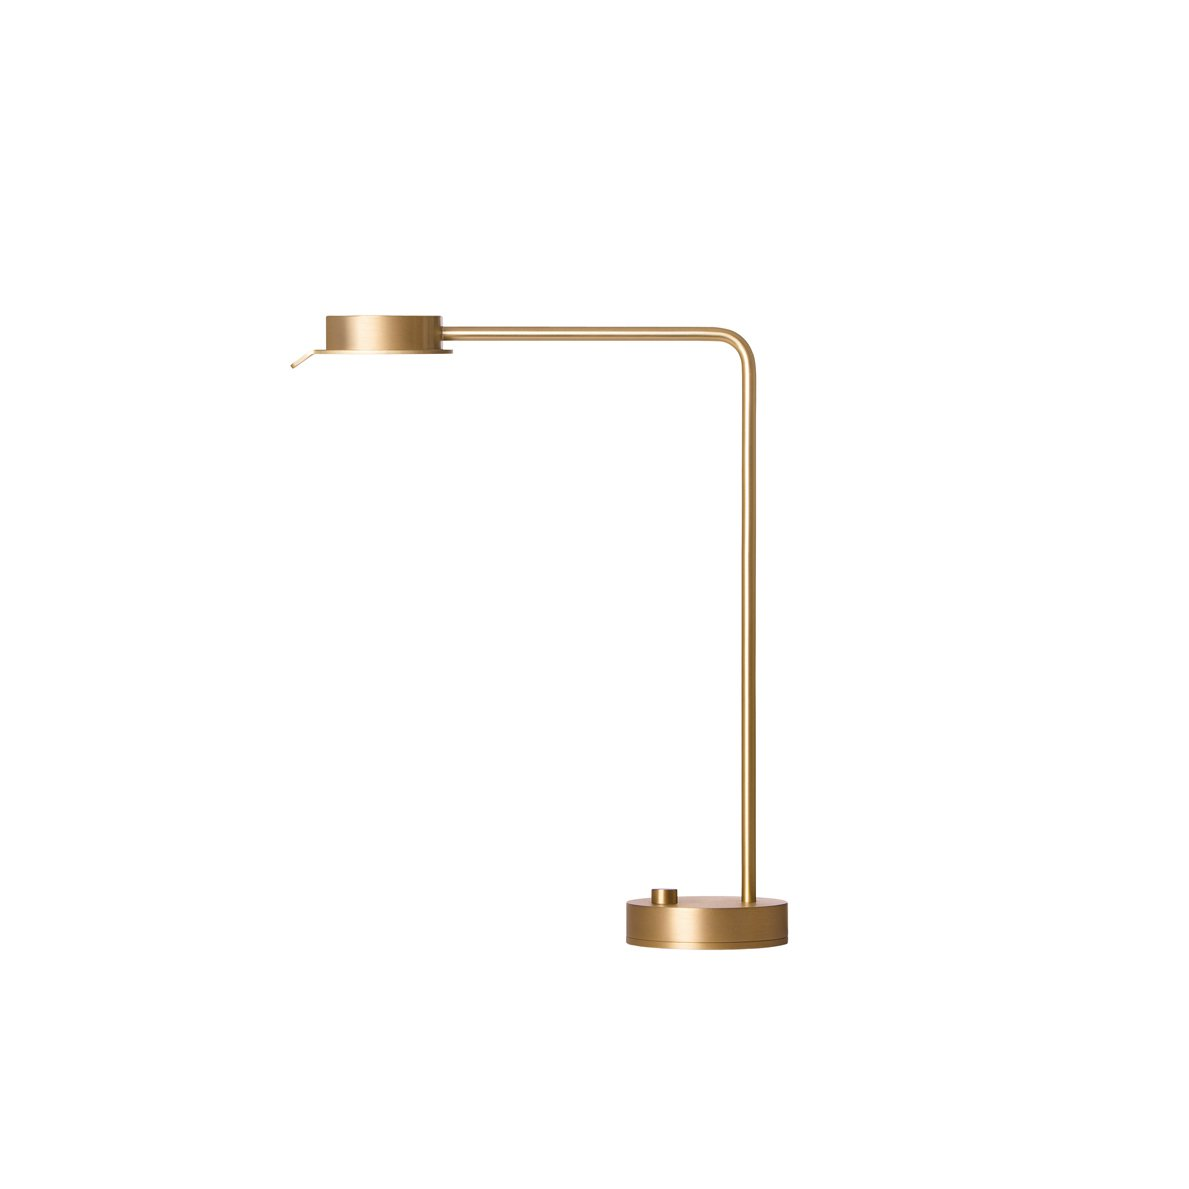 British architect David Chipperfield's w102 Brass Table Lamp for Wästberg is sleek, minimal, and fully dimmable.  Fall Design Trend: Gold, Brass, and Copper Accents by Megan Hamaker